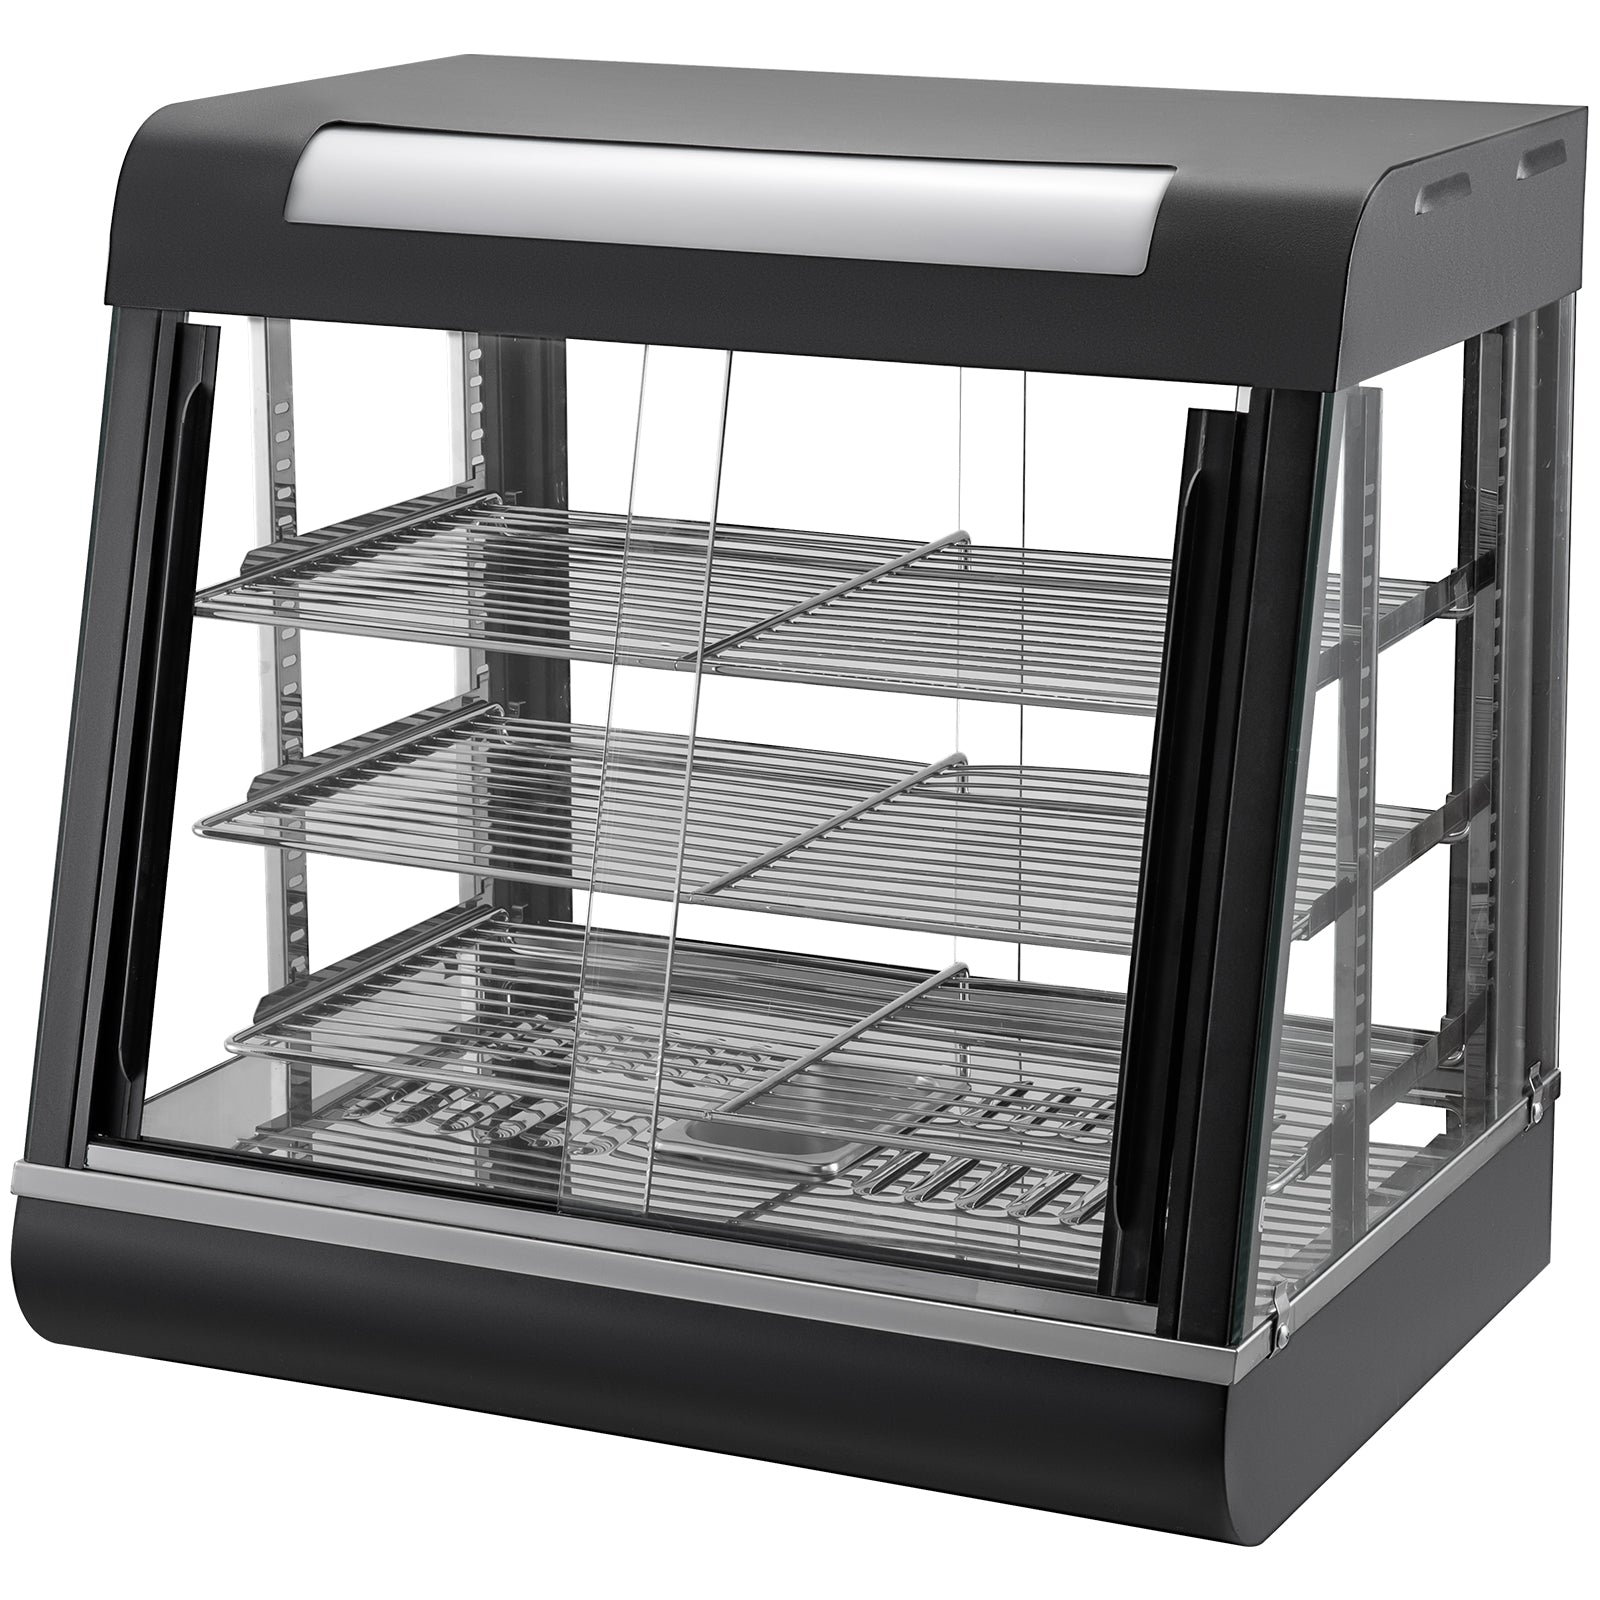 Commercial Food Warmer Display Case Pizza Warmer 48in Food Warmer Buffet 3 Tiers